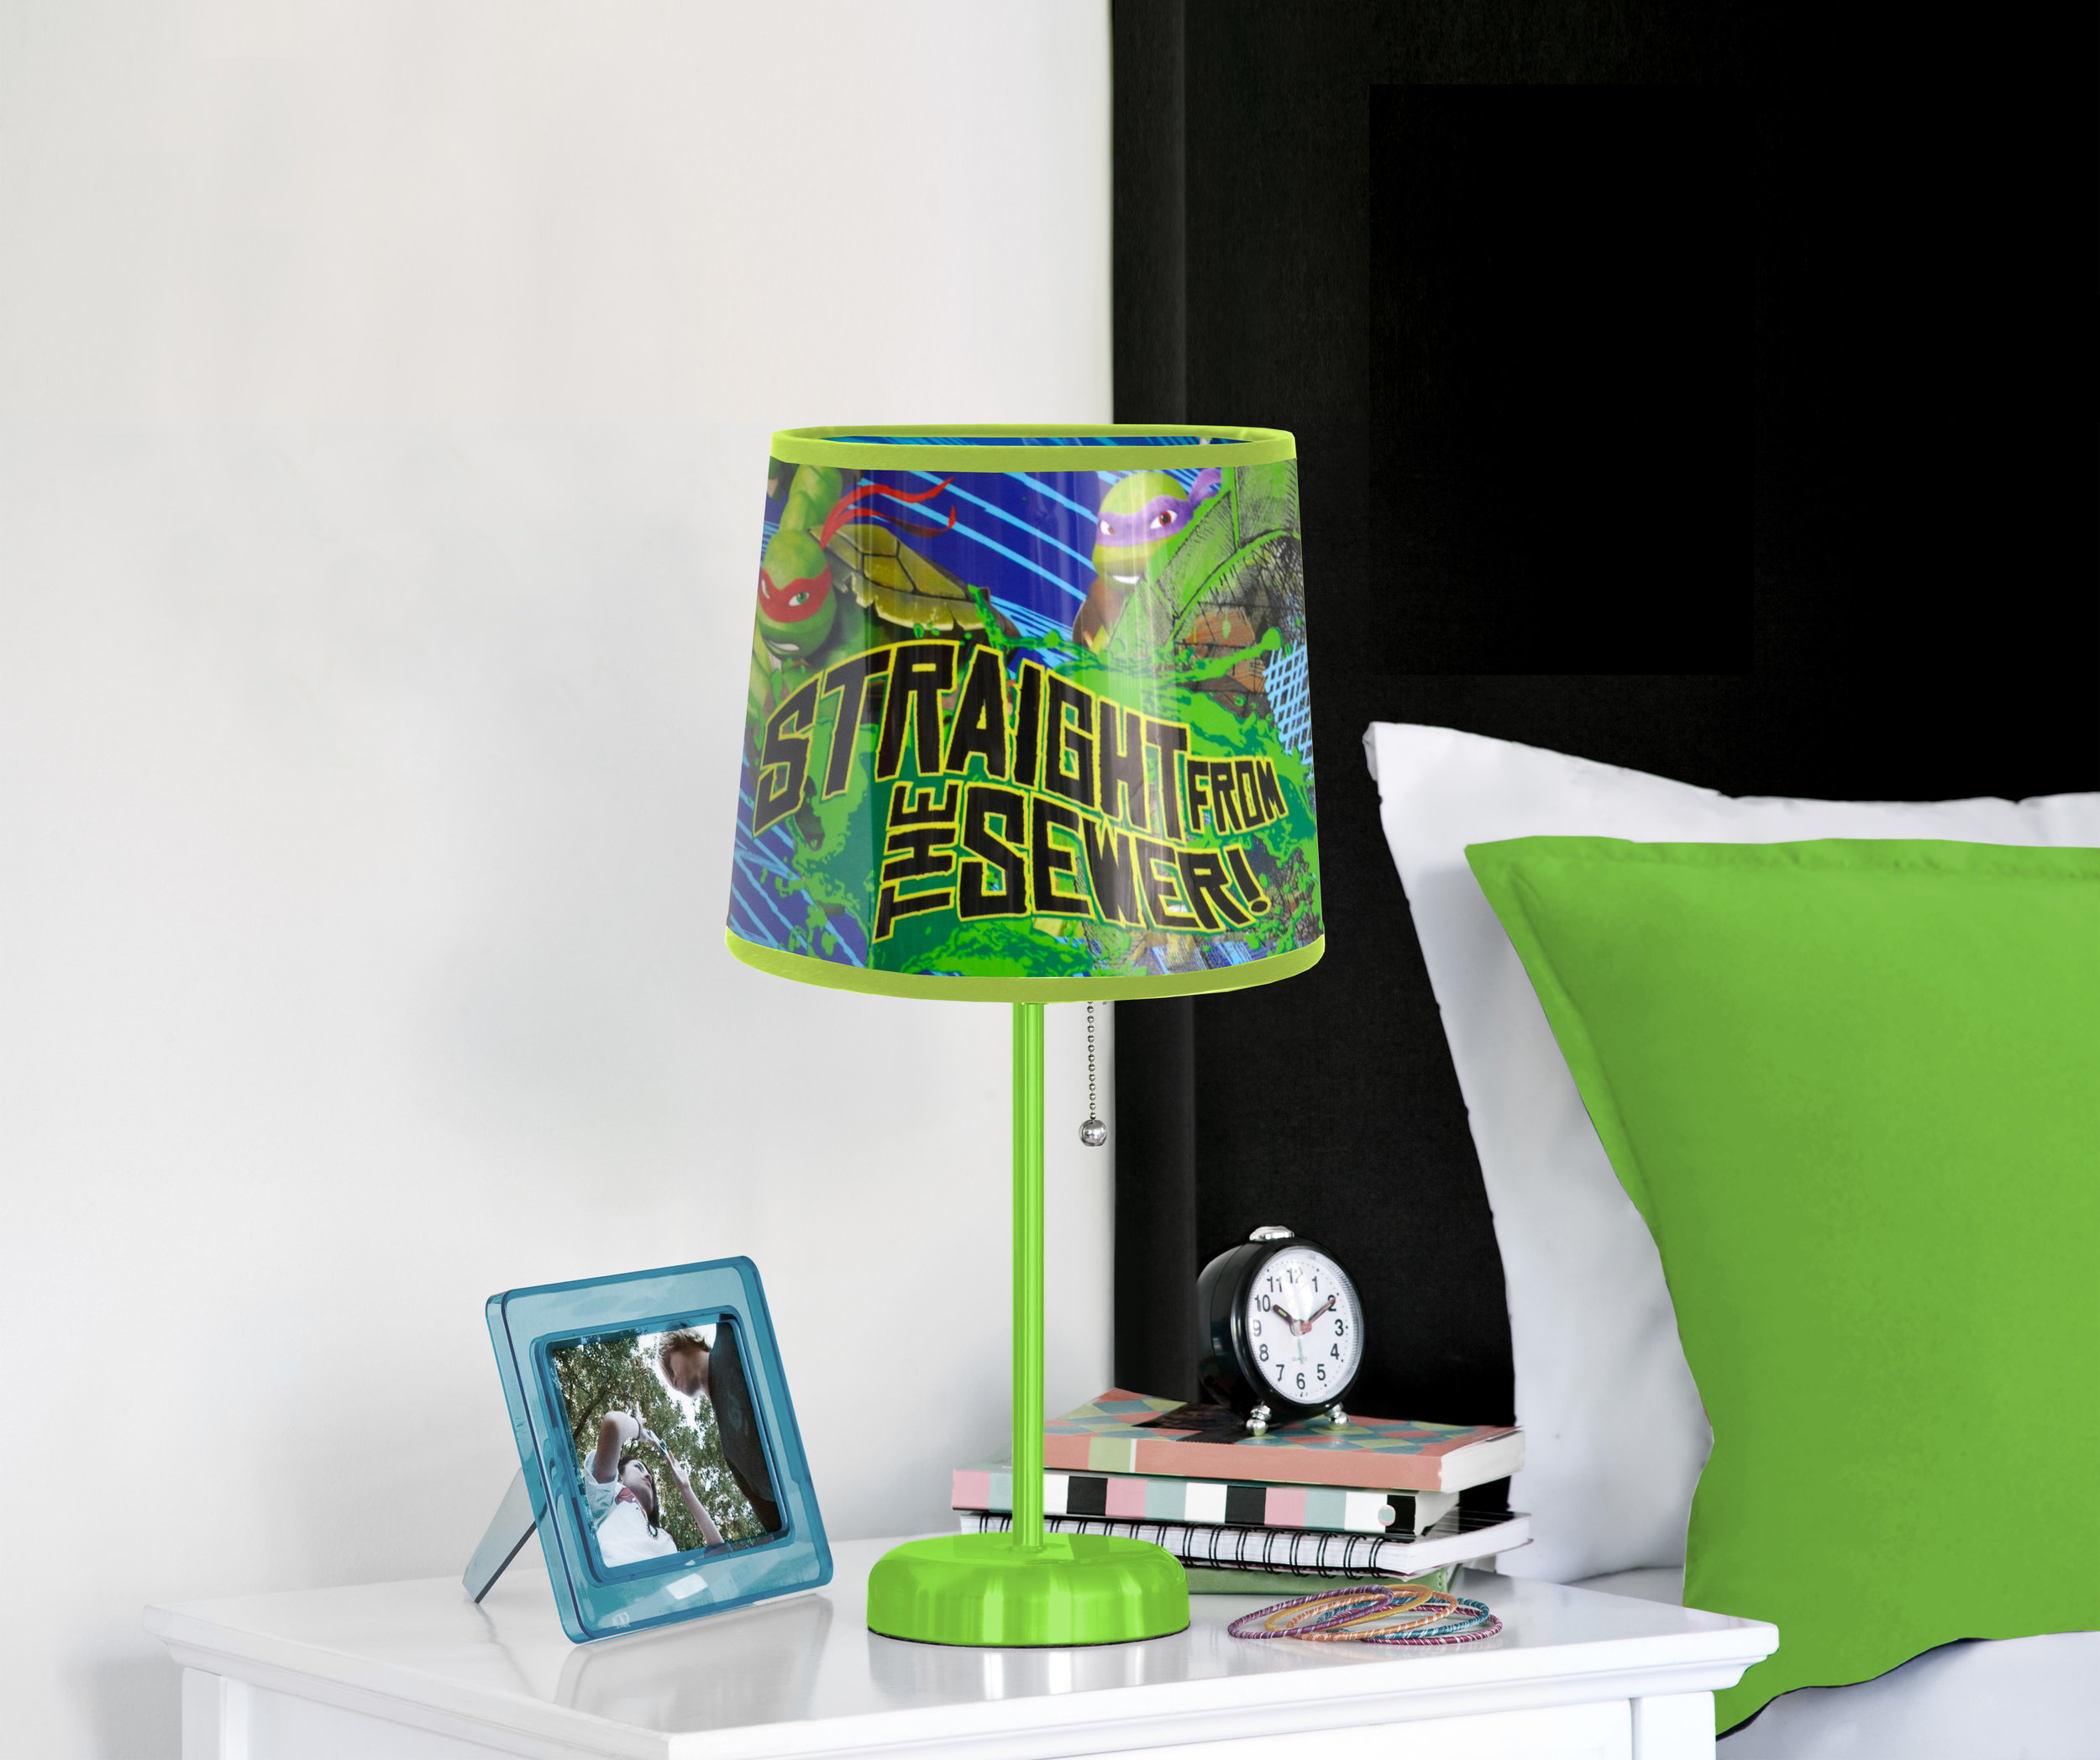 TMNT_TABLE LAMP ROOM.jpg